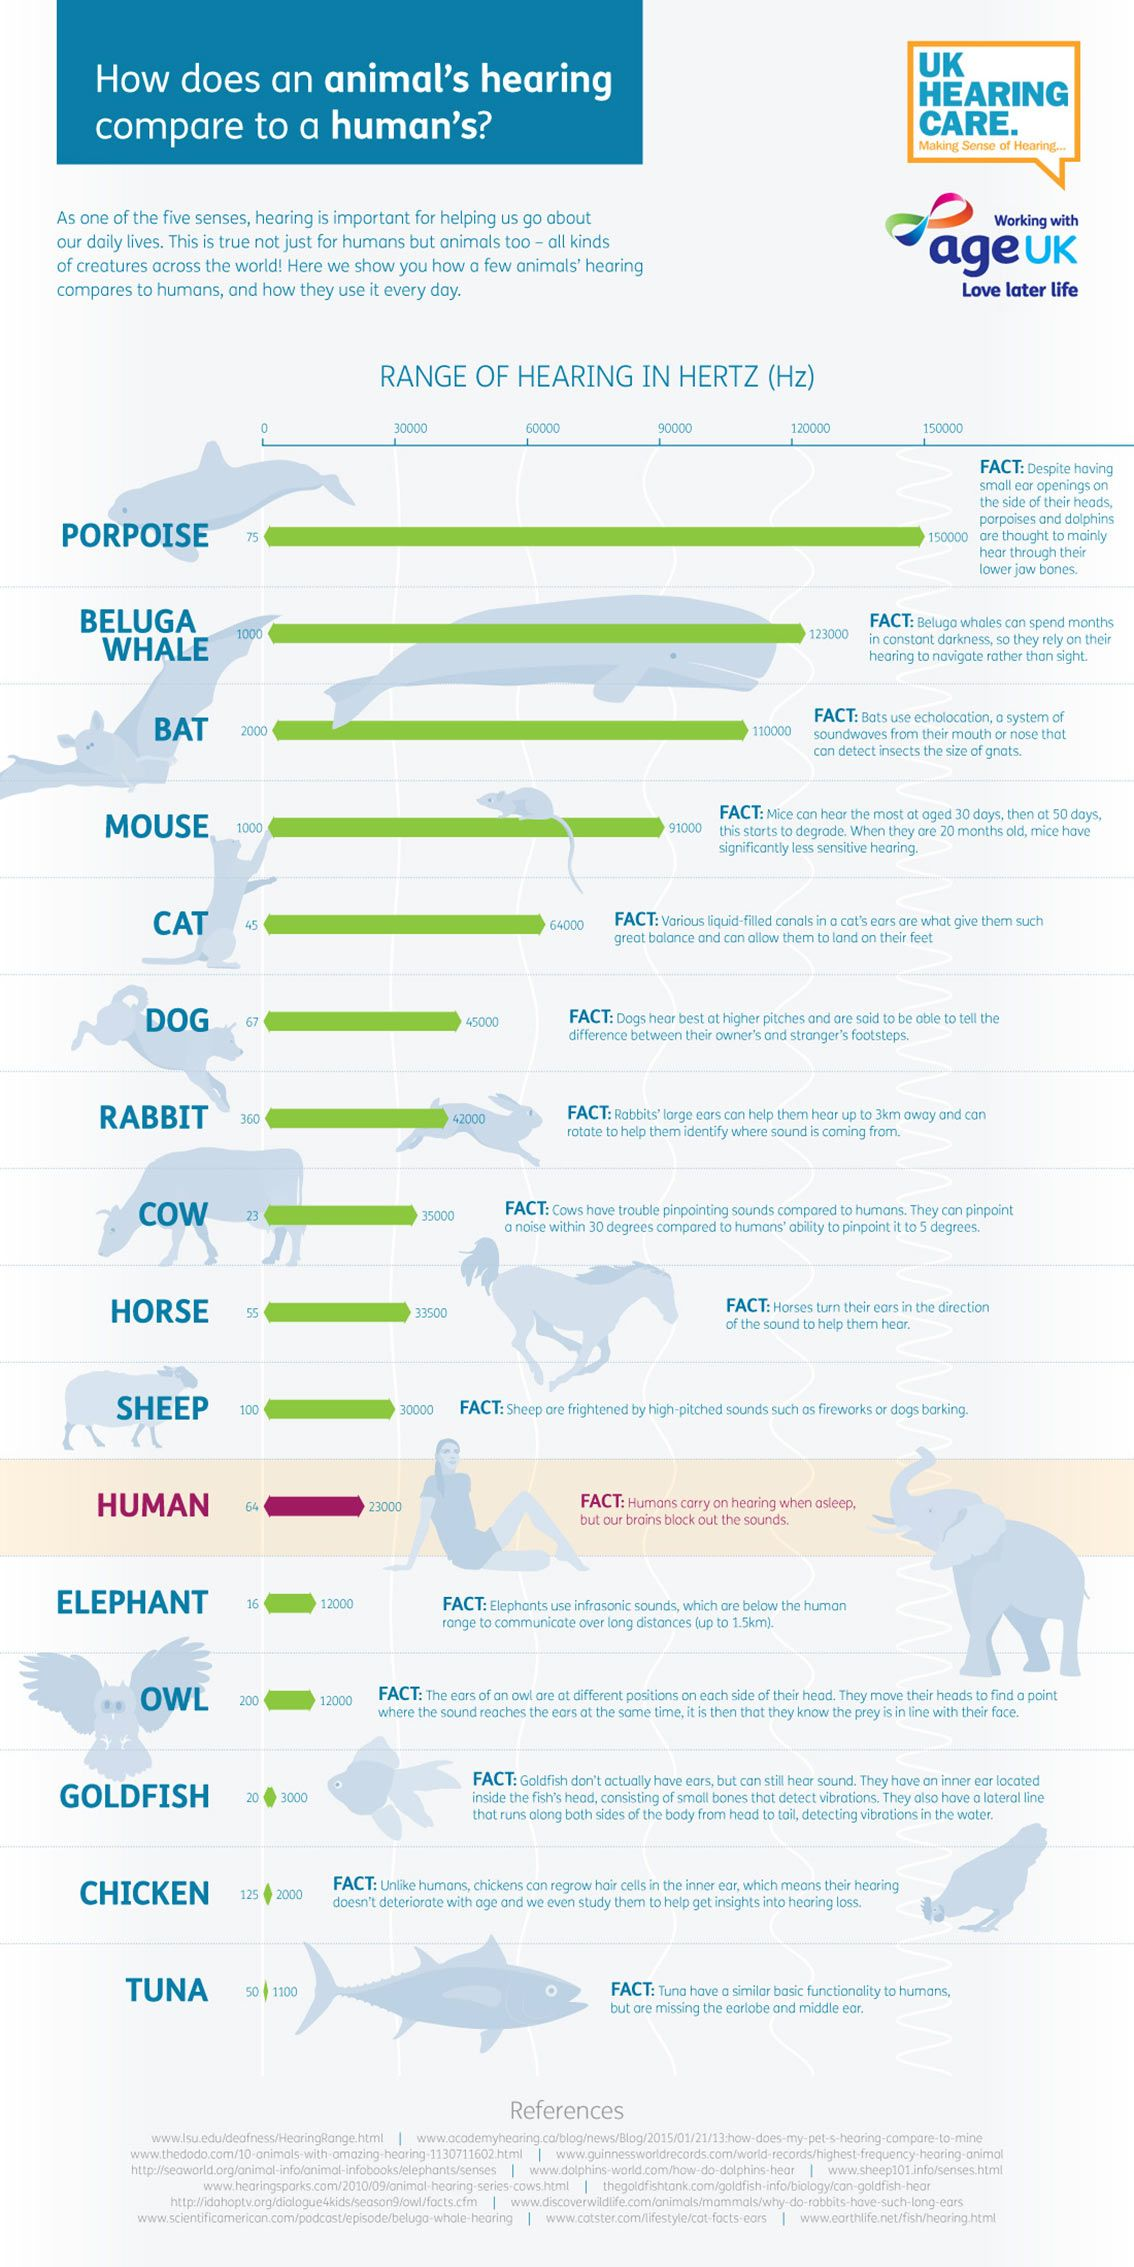 Animal Hearing Ranges Compared to Human Infographic. Topic: sound, ear, animals, biology.